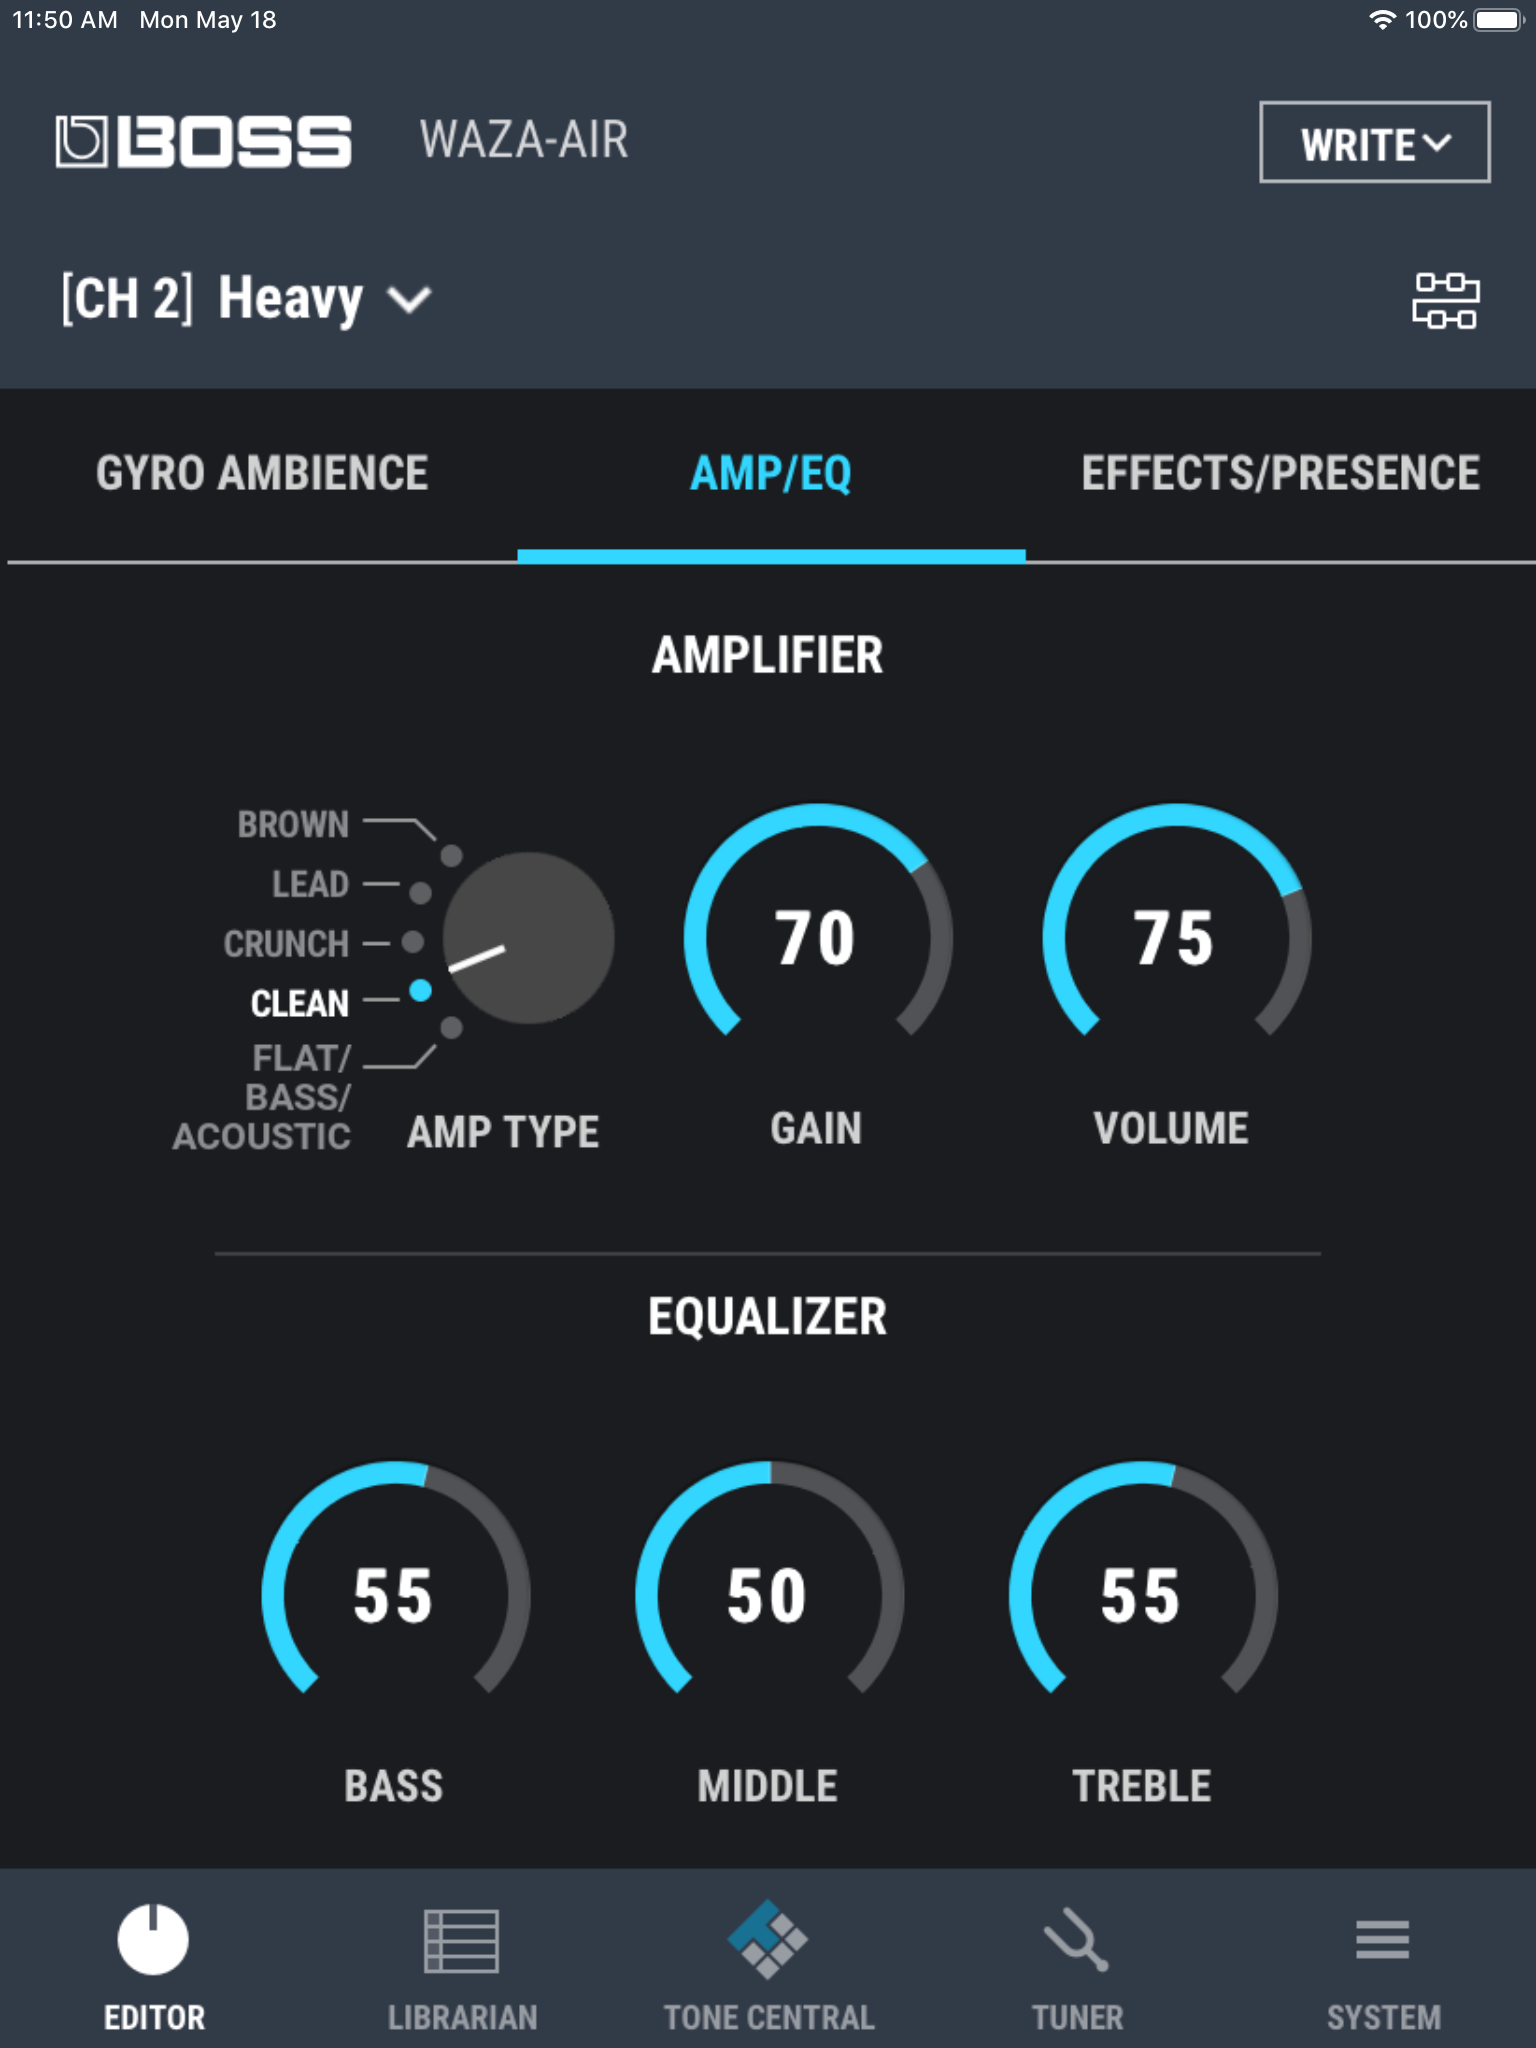 The amp/eq setting in the Waza-Air app